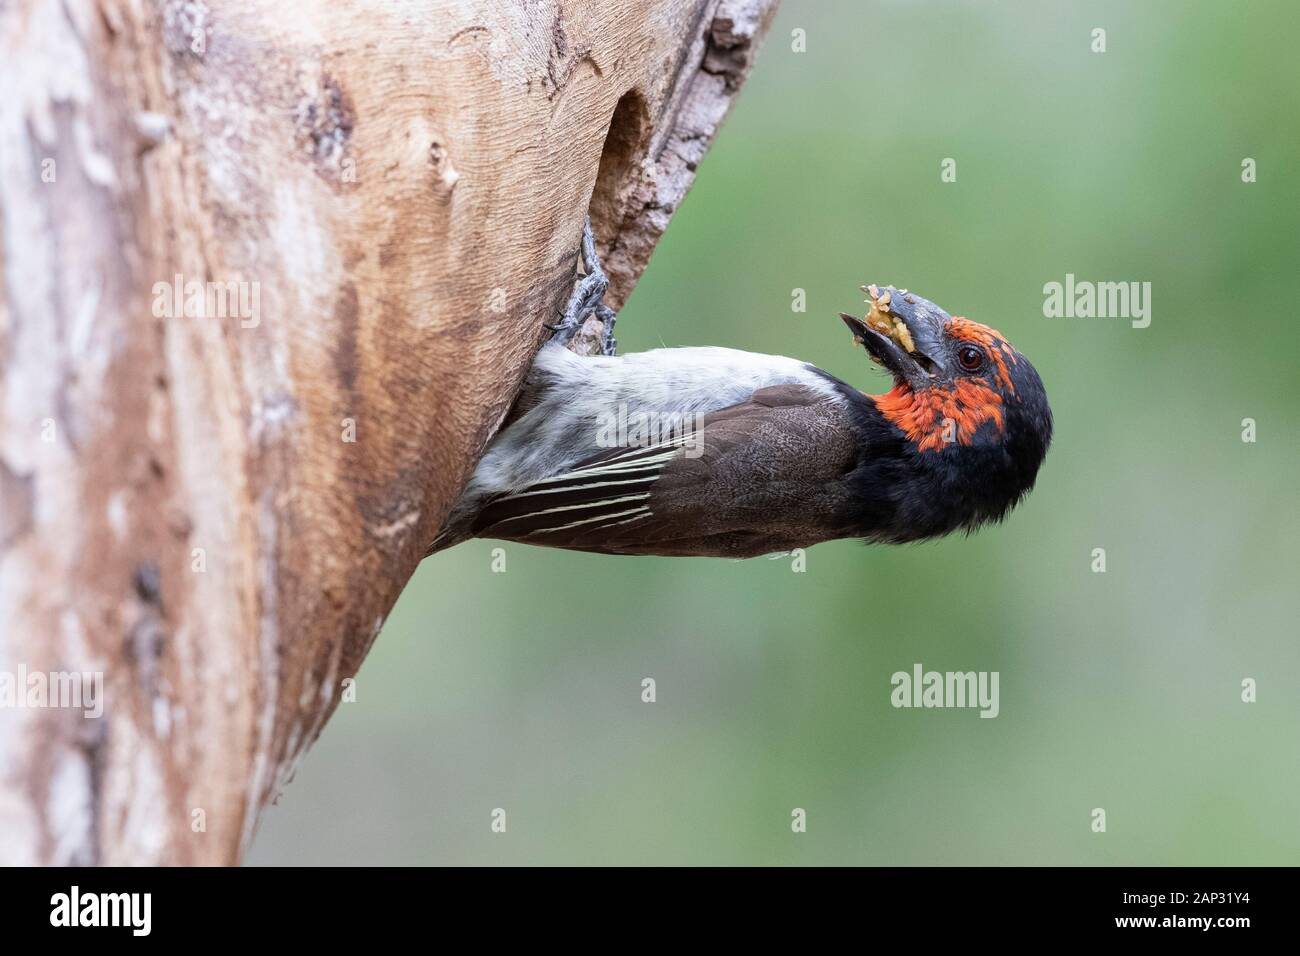 Black-collared Barbet (Lybius torquatus), side view of an adult at the entrance of the nest, Mpumalanga, South Africa Stock Photo